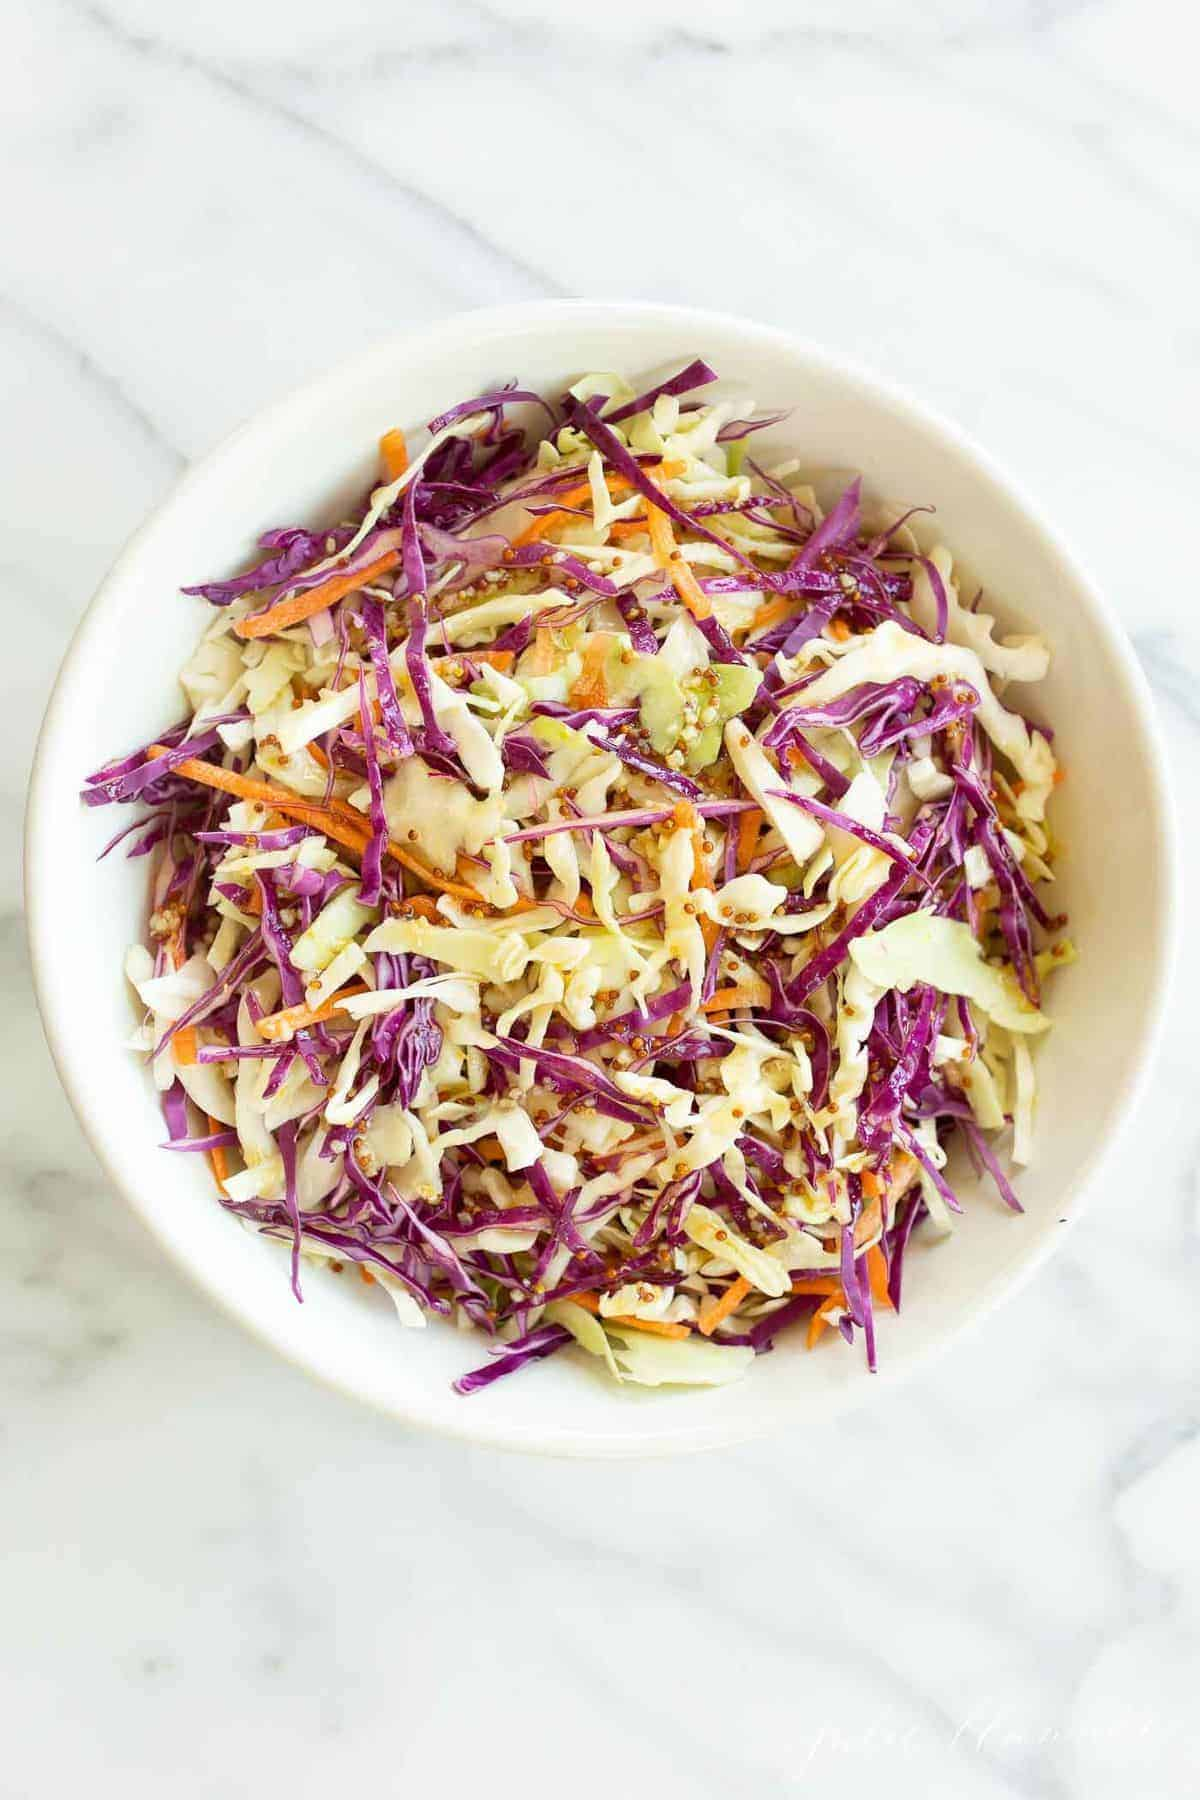 White salad bowl filled with colorful cabbage salad. #cabbagesalad